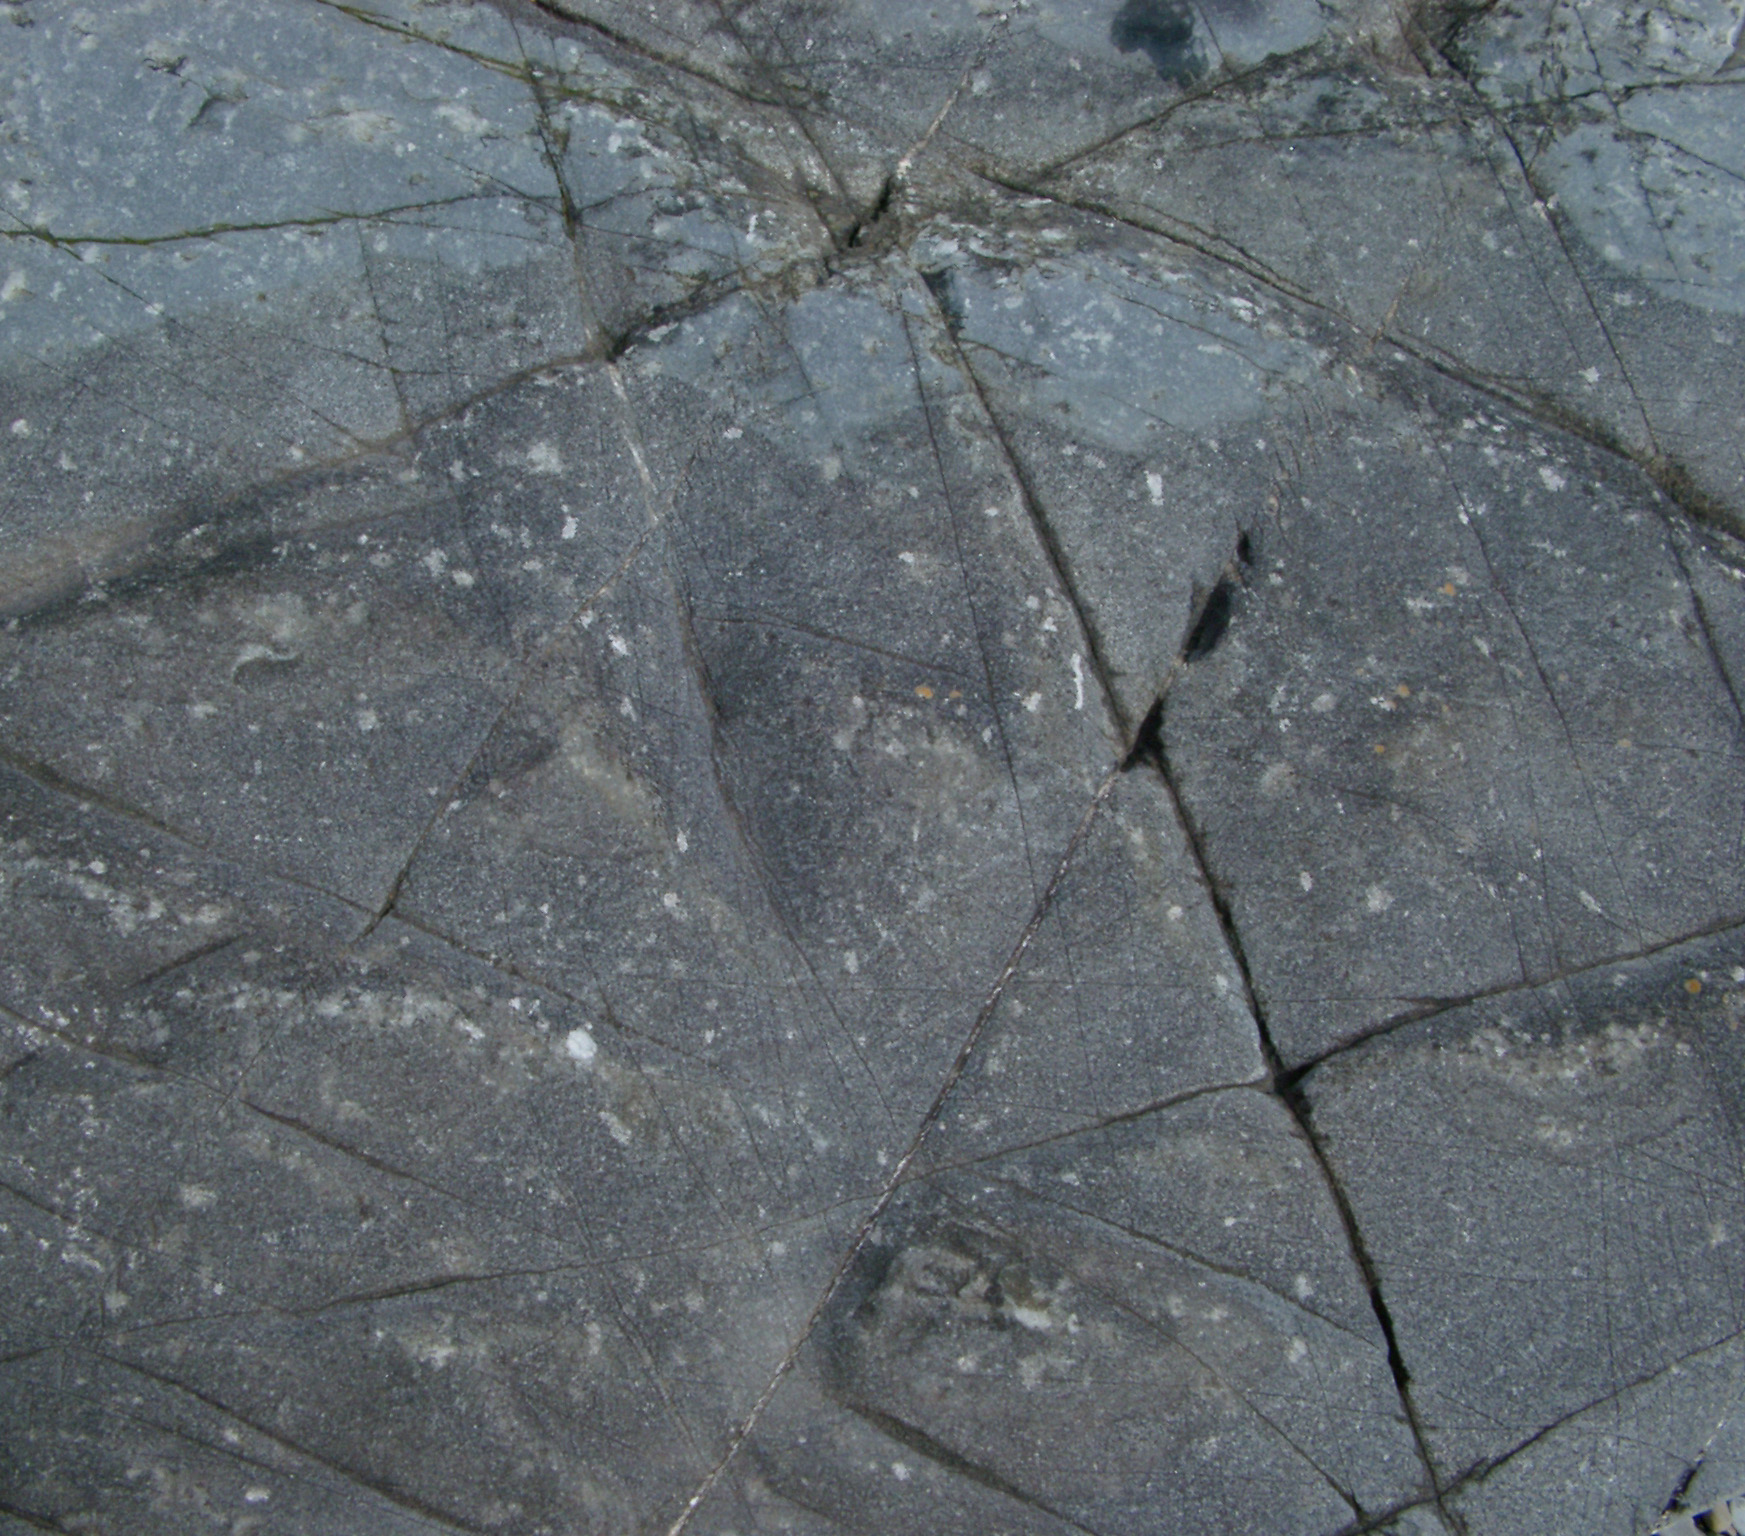 ice cracked pattern in a sheet of slate rock